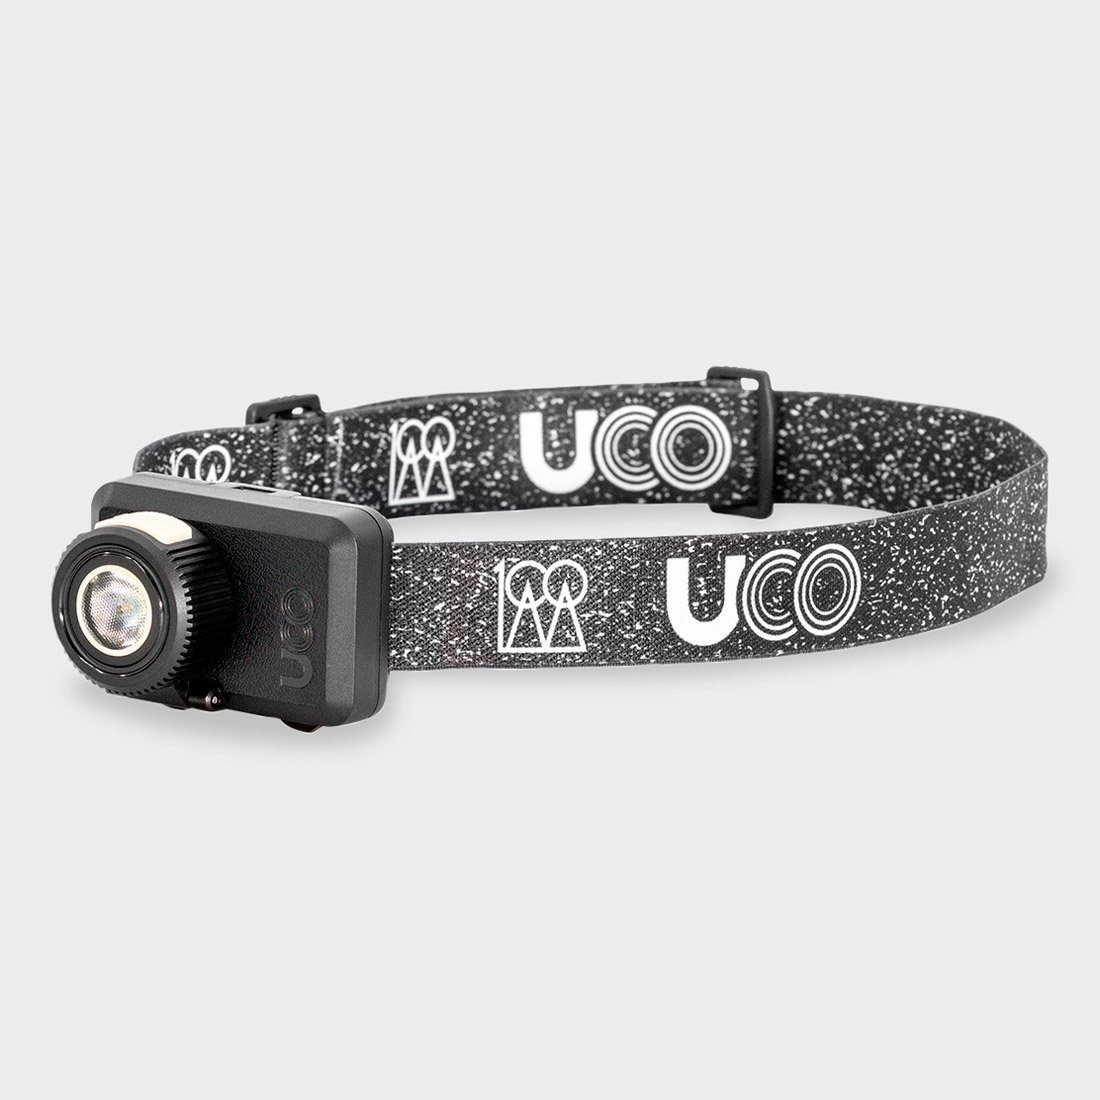 Uco Gear Hundred Headlamp Static